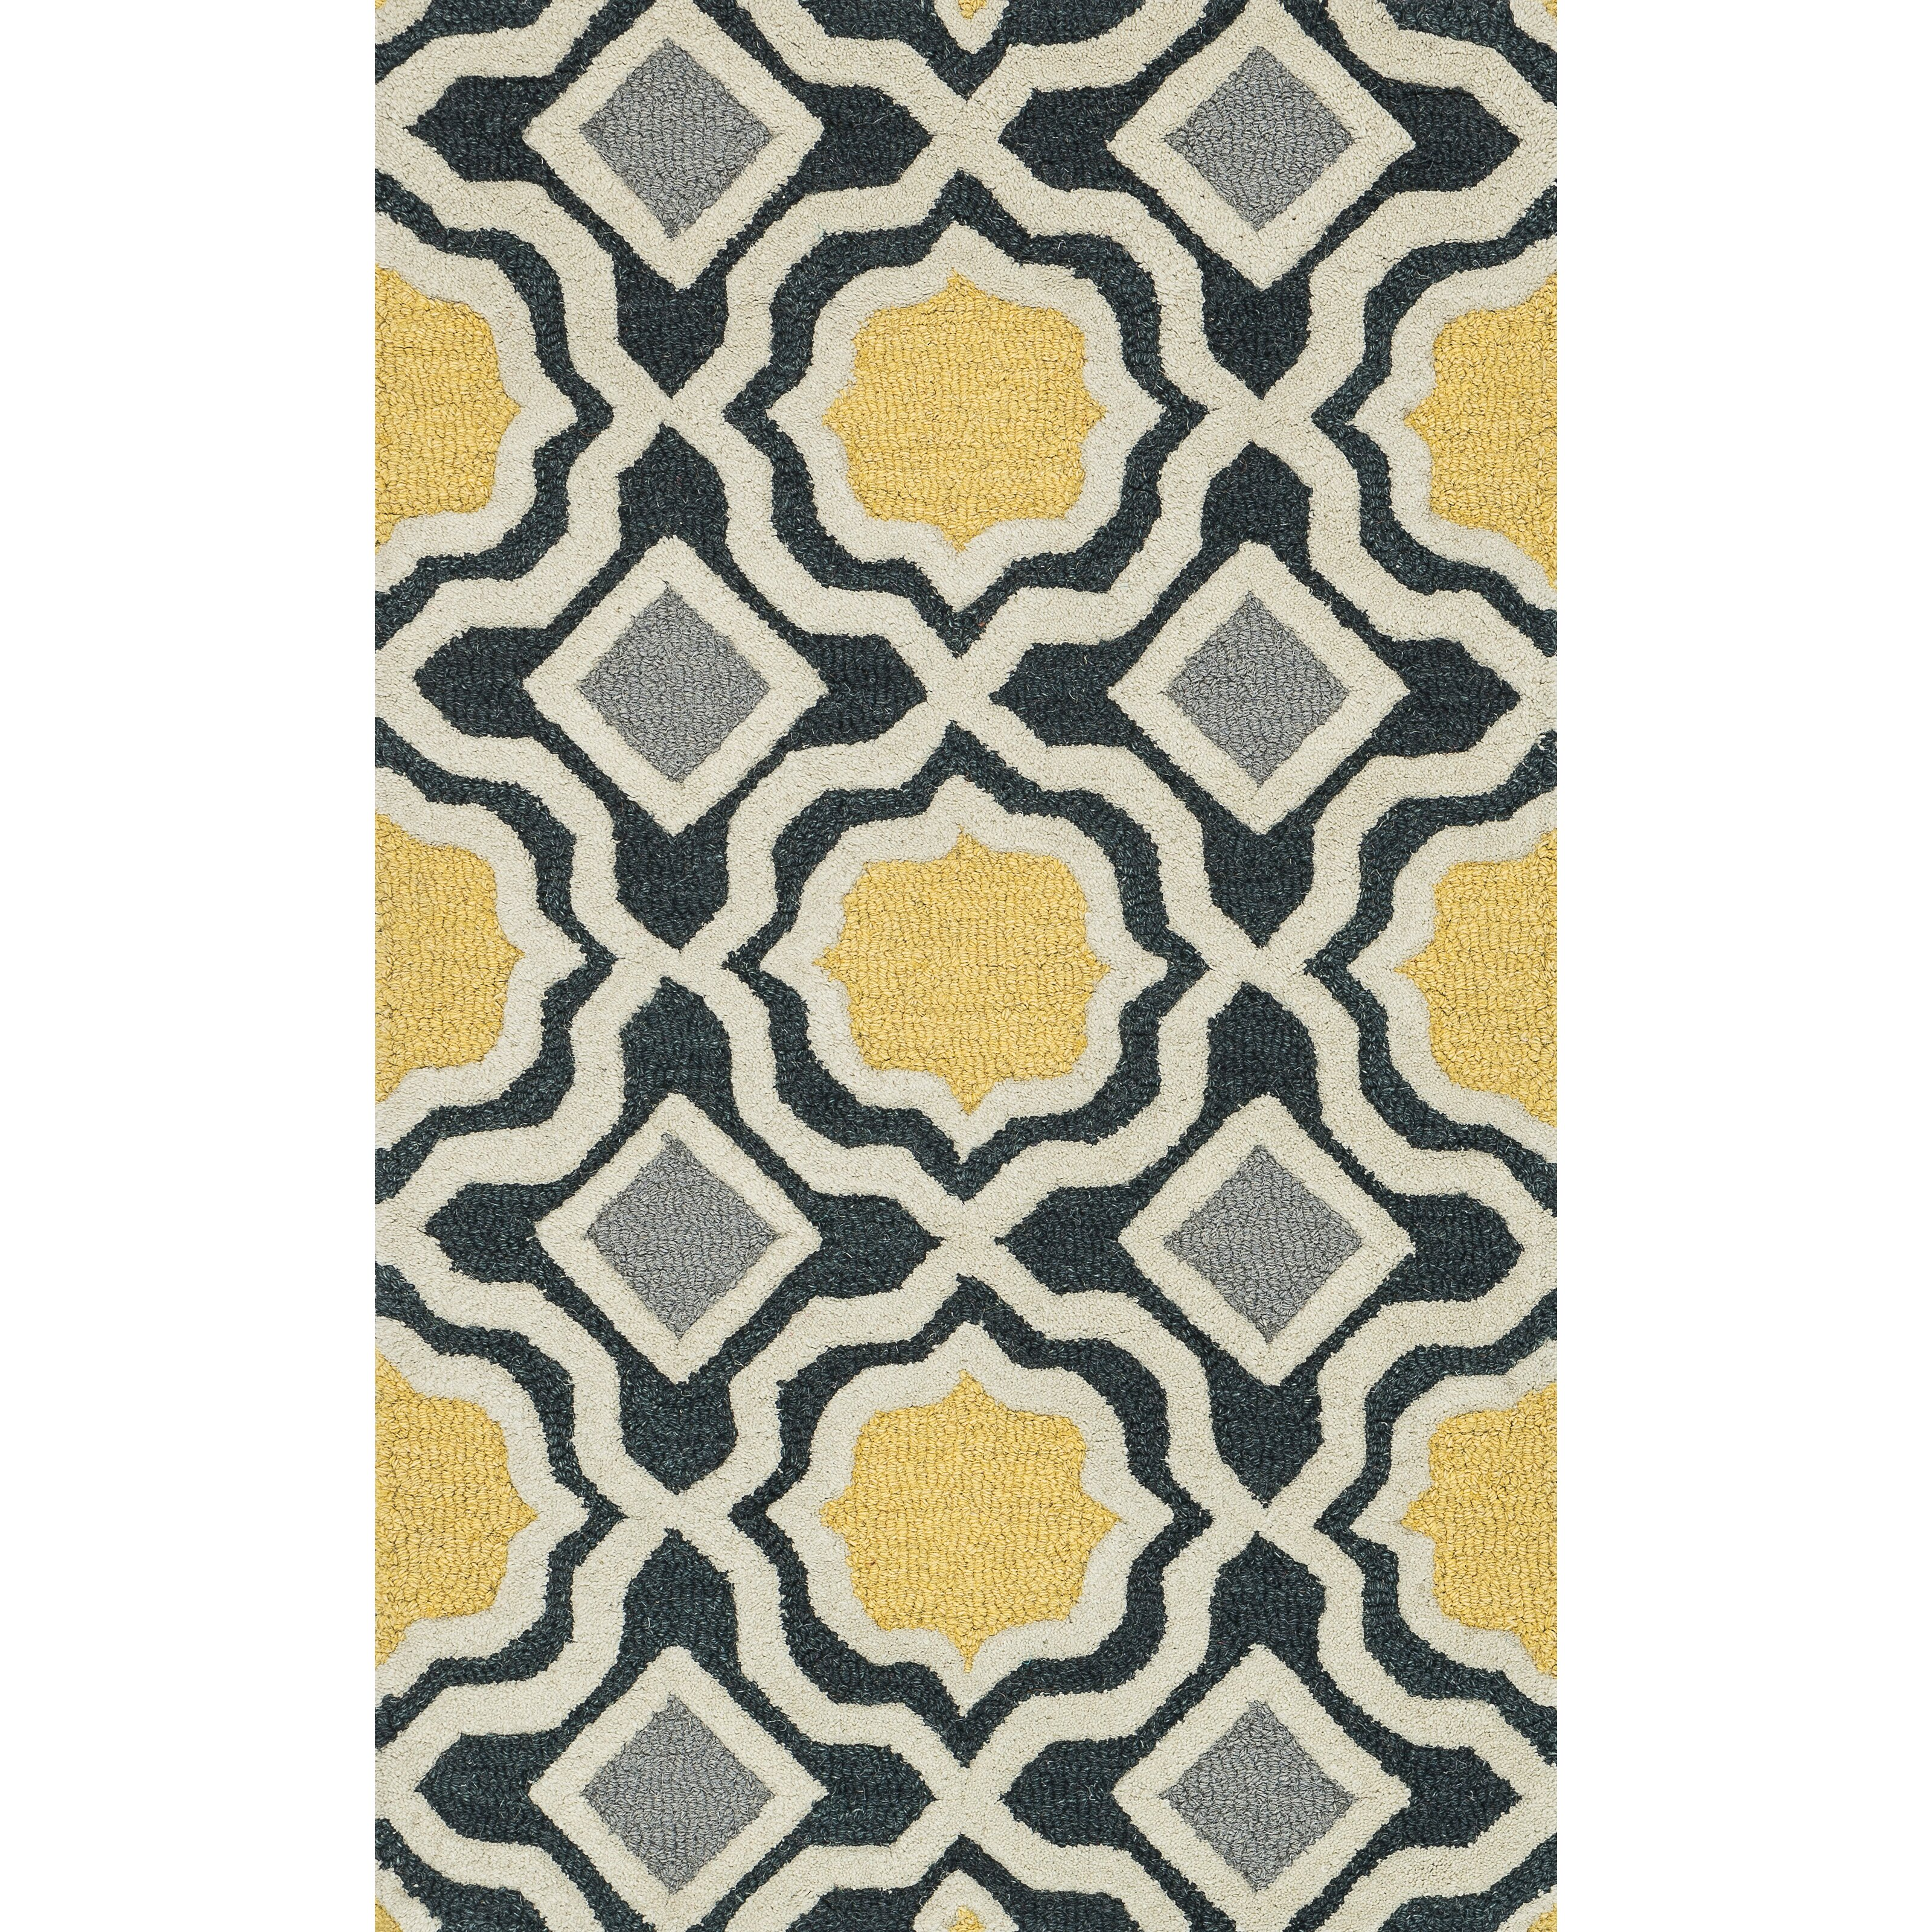 Loloi Rugs Weston Charcoal/Gold Rug & Reviews